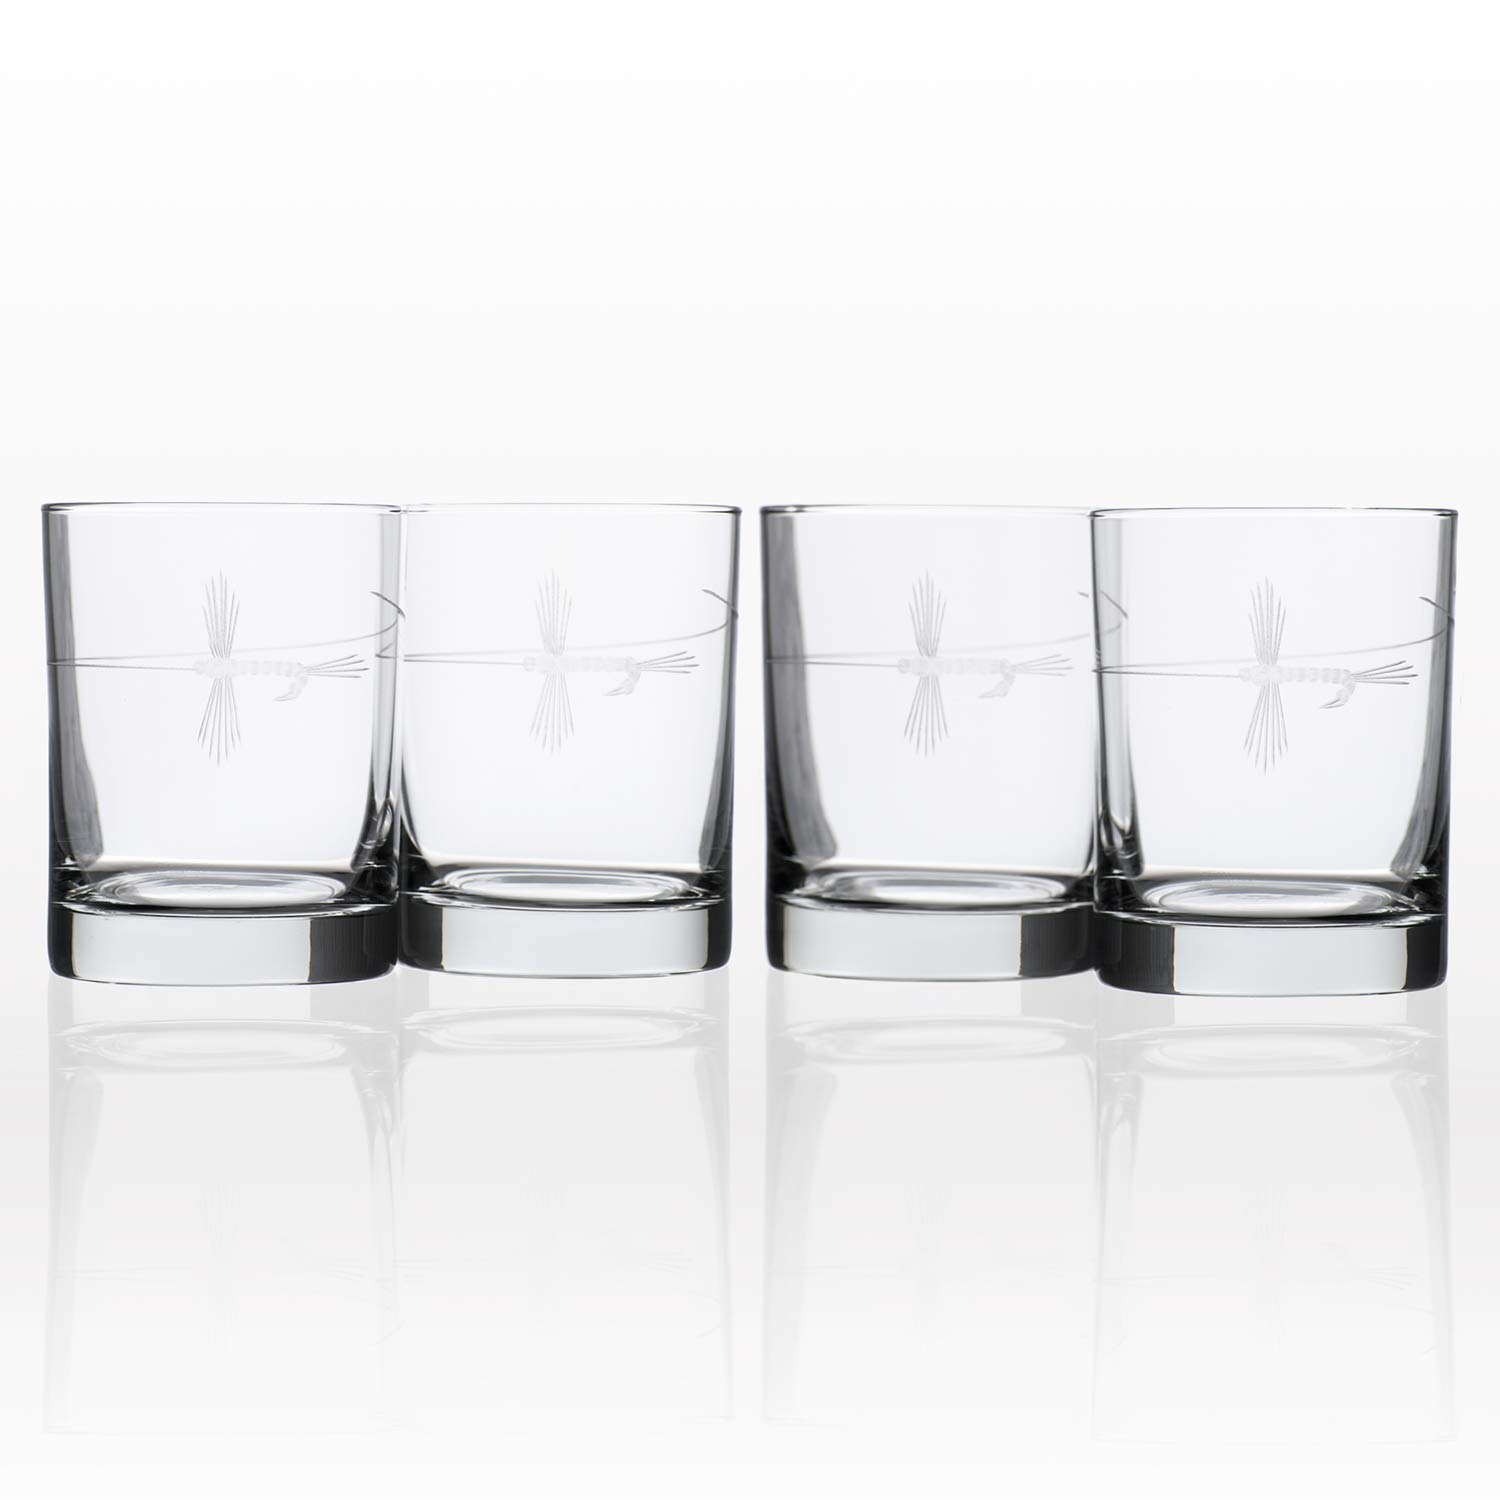 Rolf Glass Etched Fly Fishing Double Old Fashioned Glass (Set of 4), 13 oz, Clear